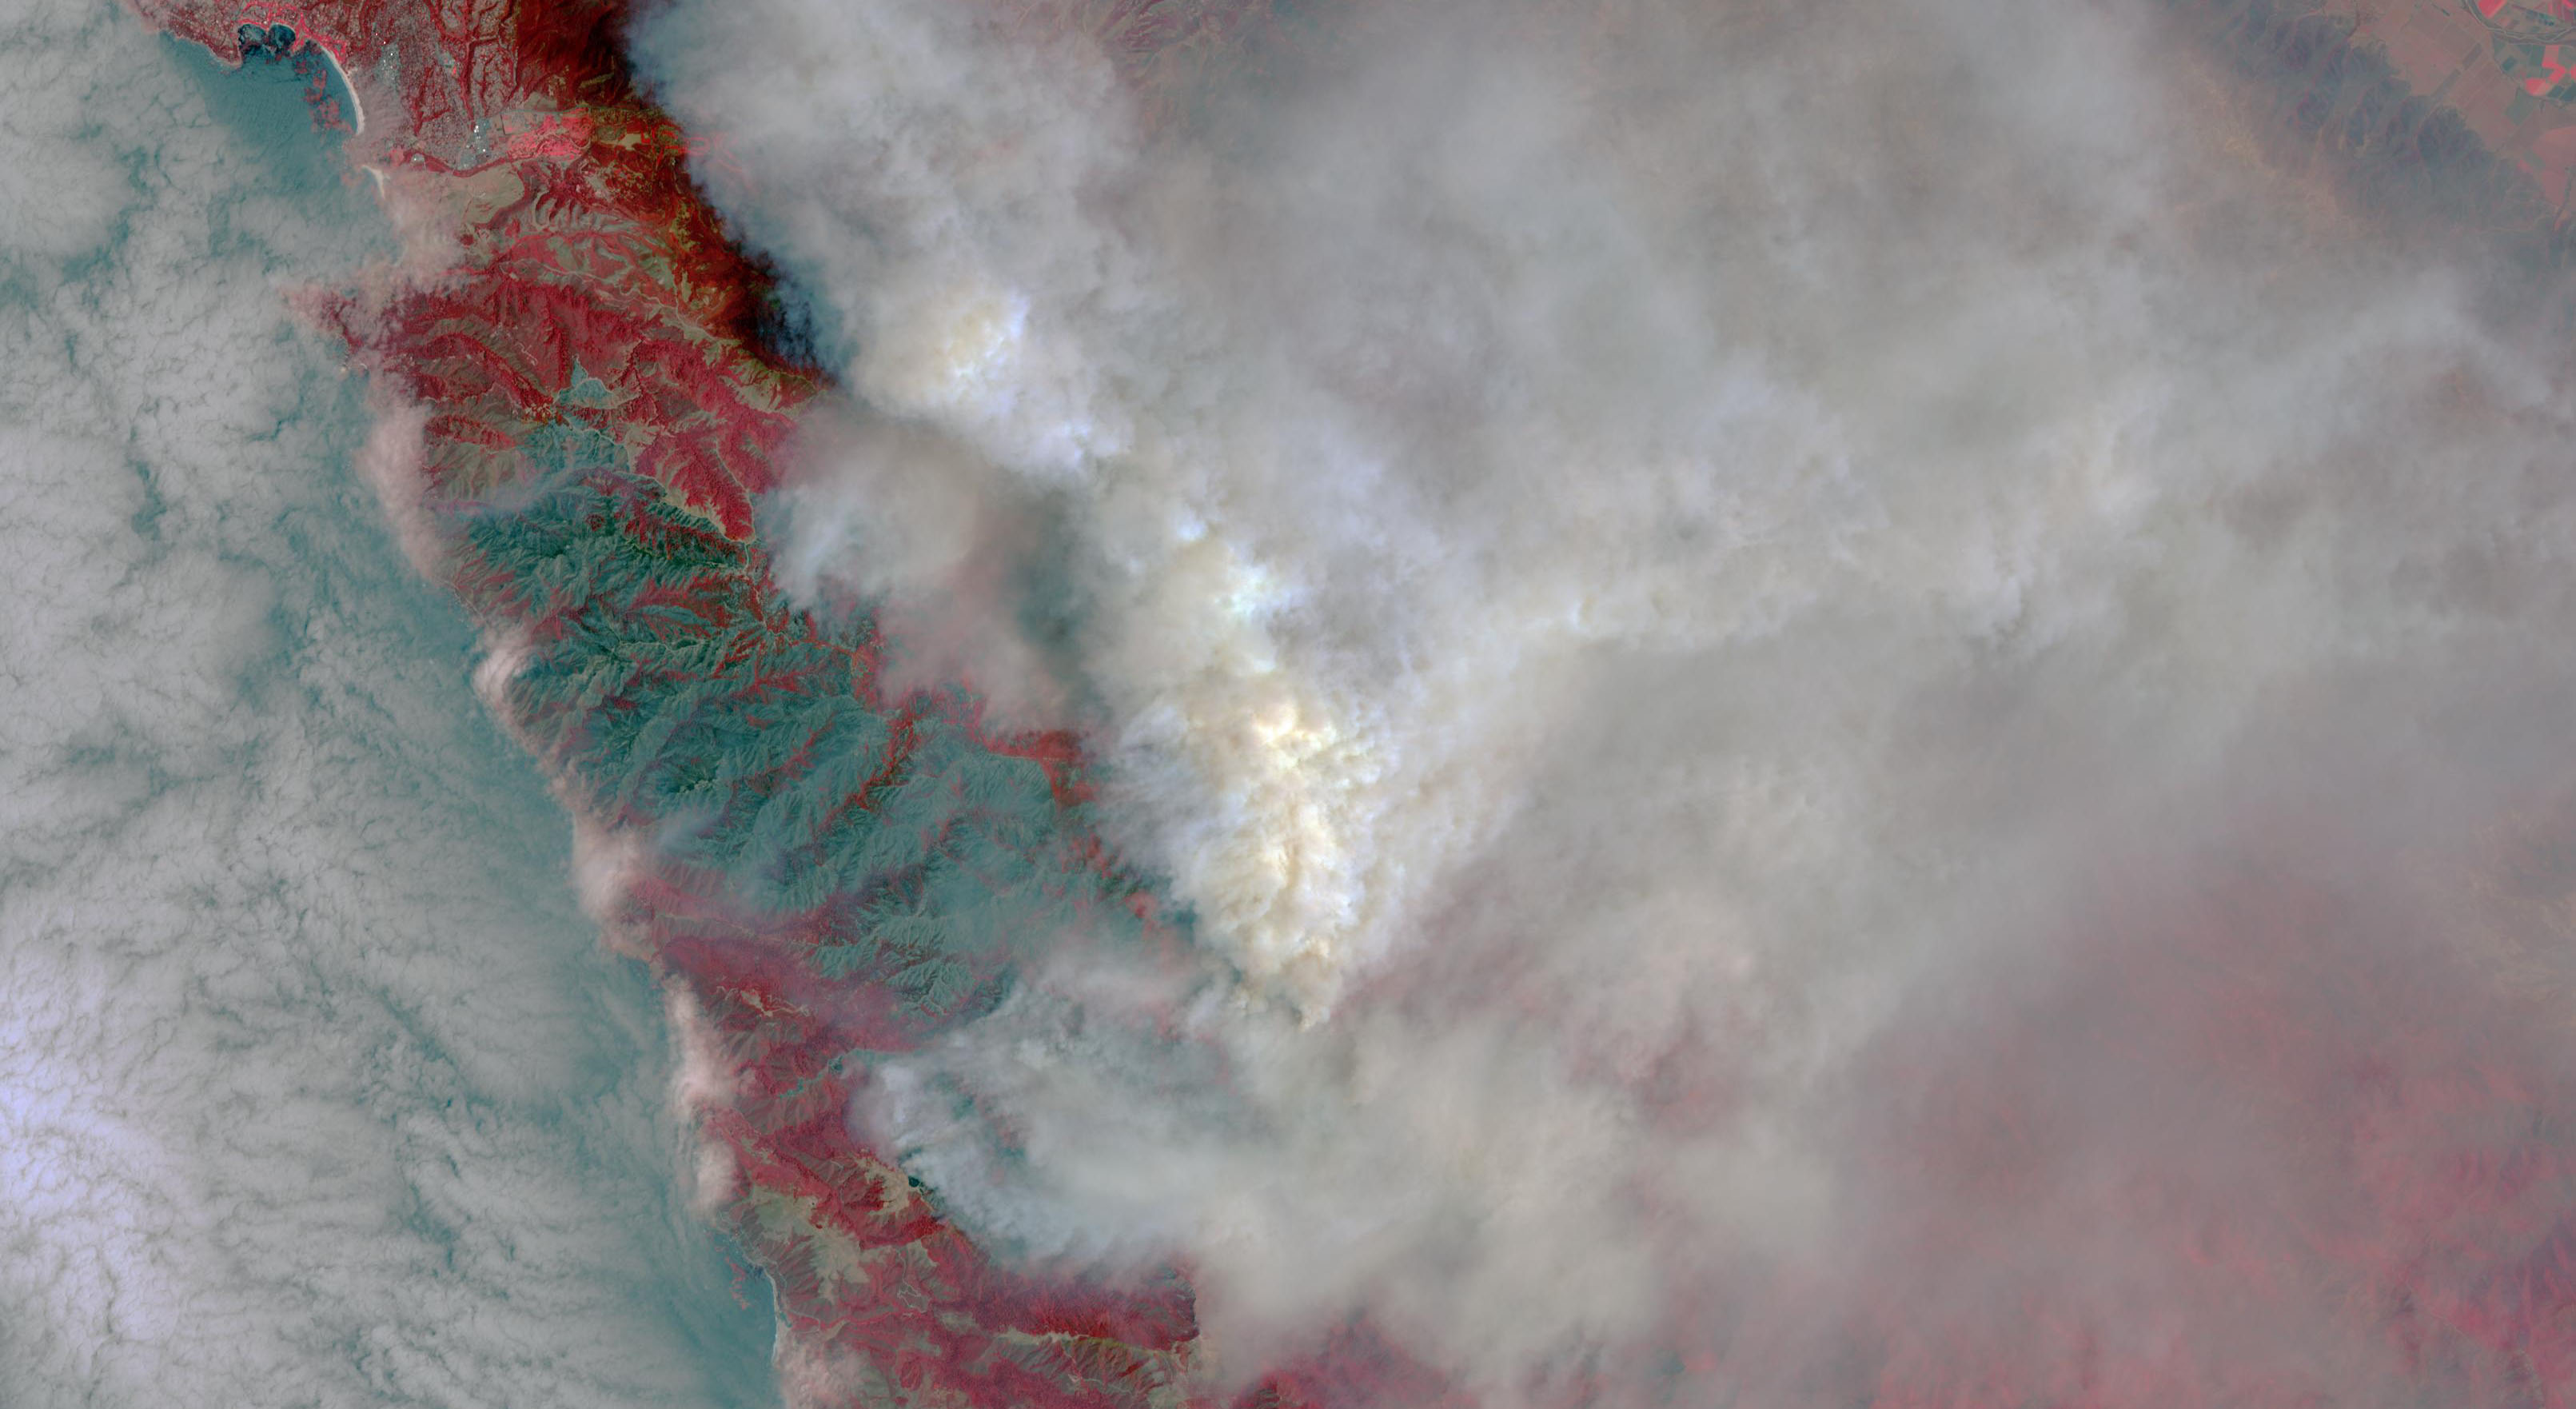 An image of the Soberanes fire, in northern California near Big Sur